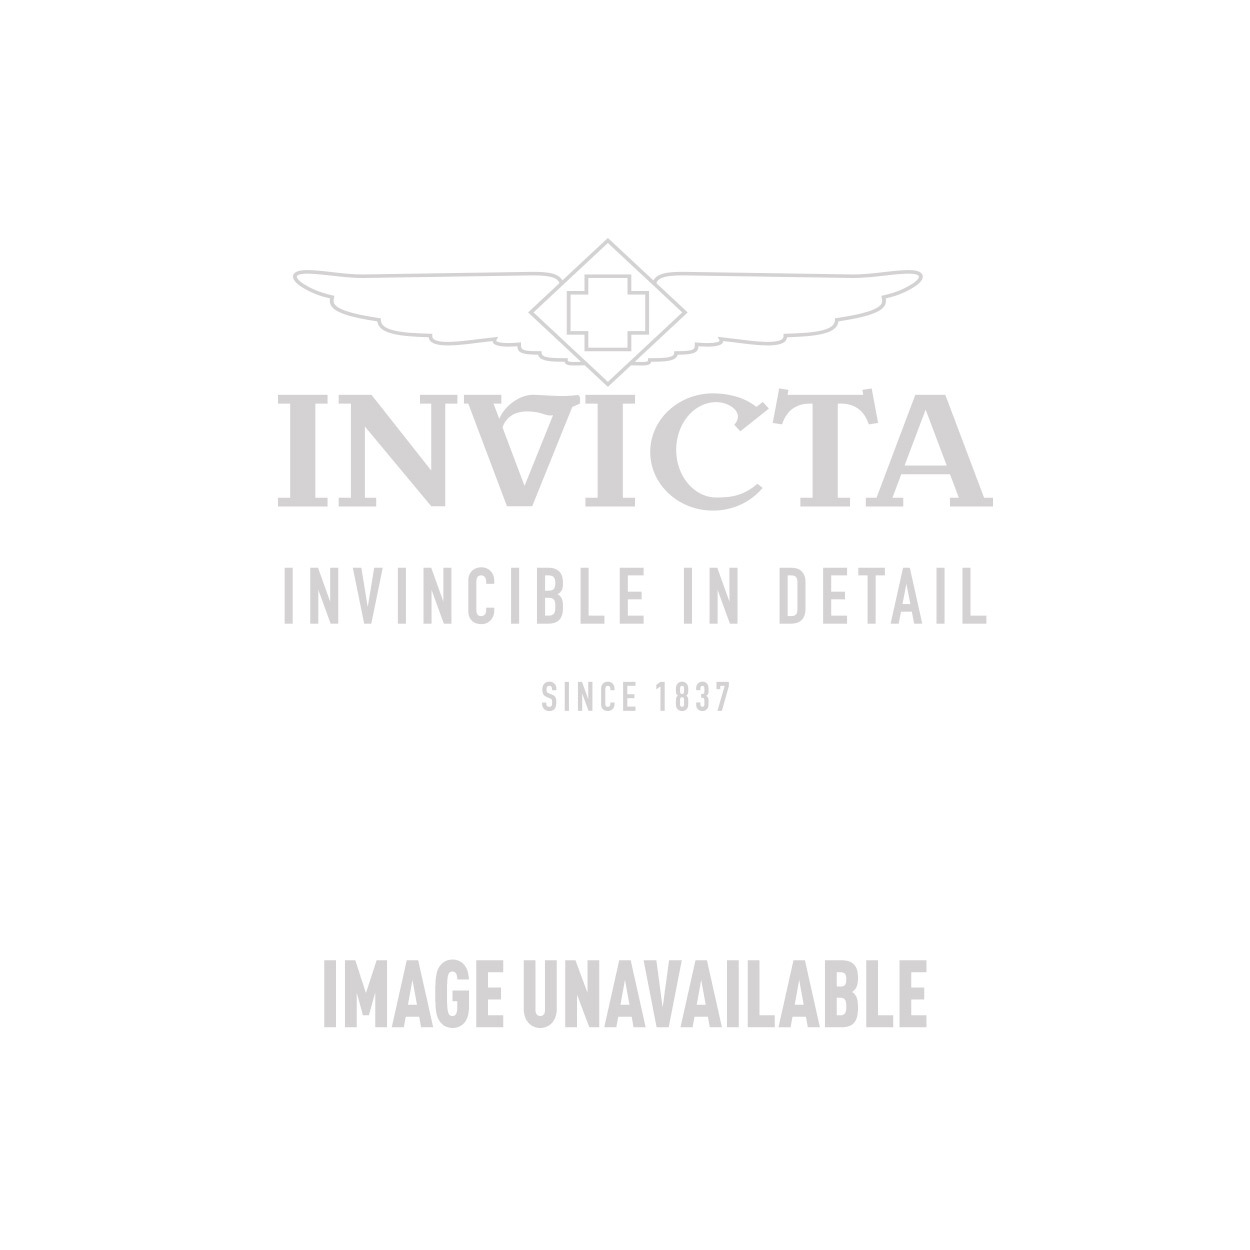 Invicta S. Coifman Swiss Movement Quartz Watch - Gold case with White tone Leather band - Model SC0335